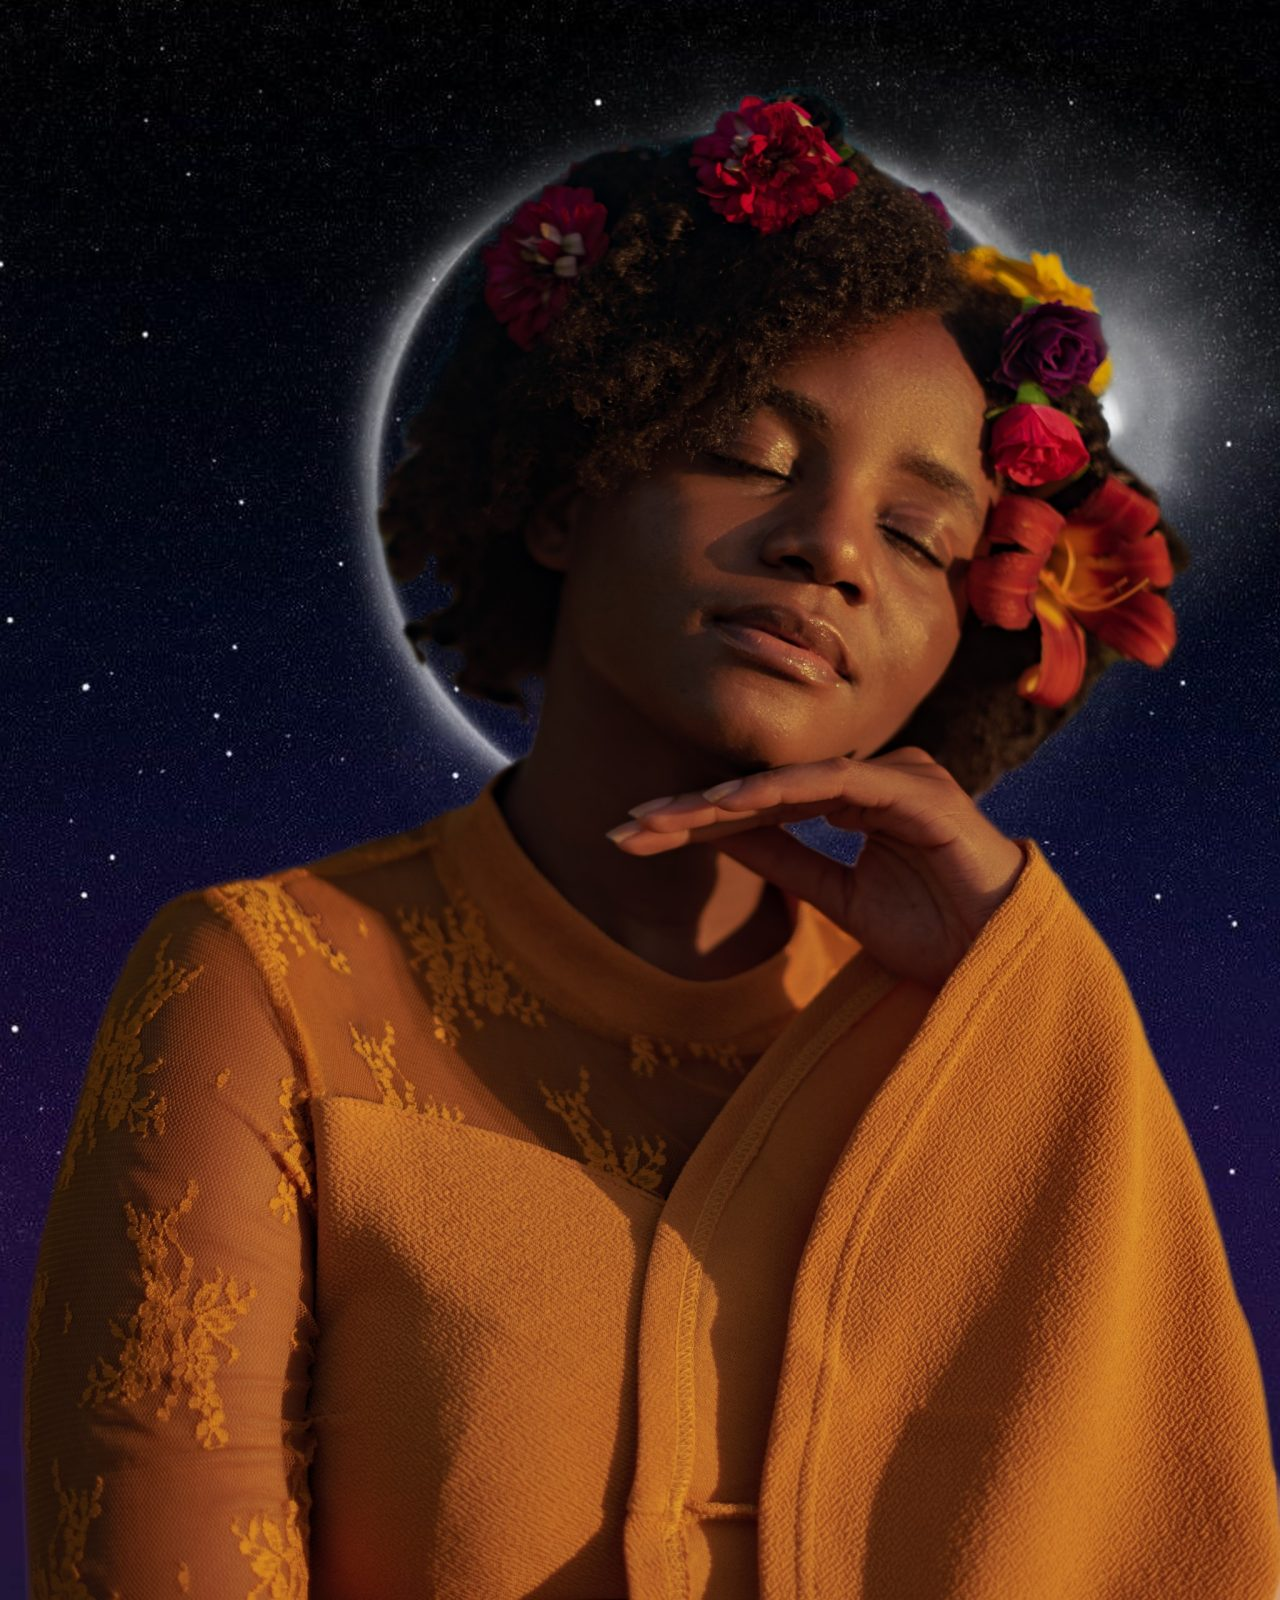 A photograph of a black woman in an orange dress with flowing sleeves wearing a flower crown, her eyes closed peacefully with on hand lightly beneath her chin, and the outline of the moon showing behind her head like an eclipse, against a background of the night sky